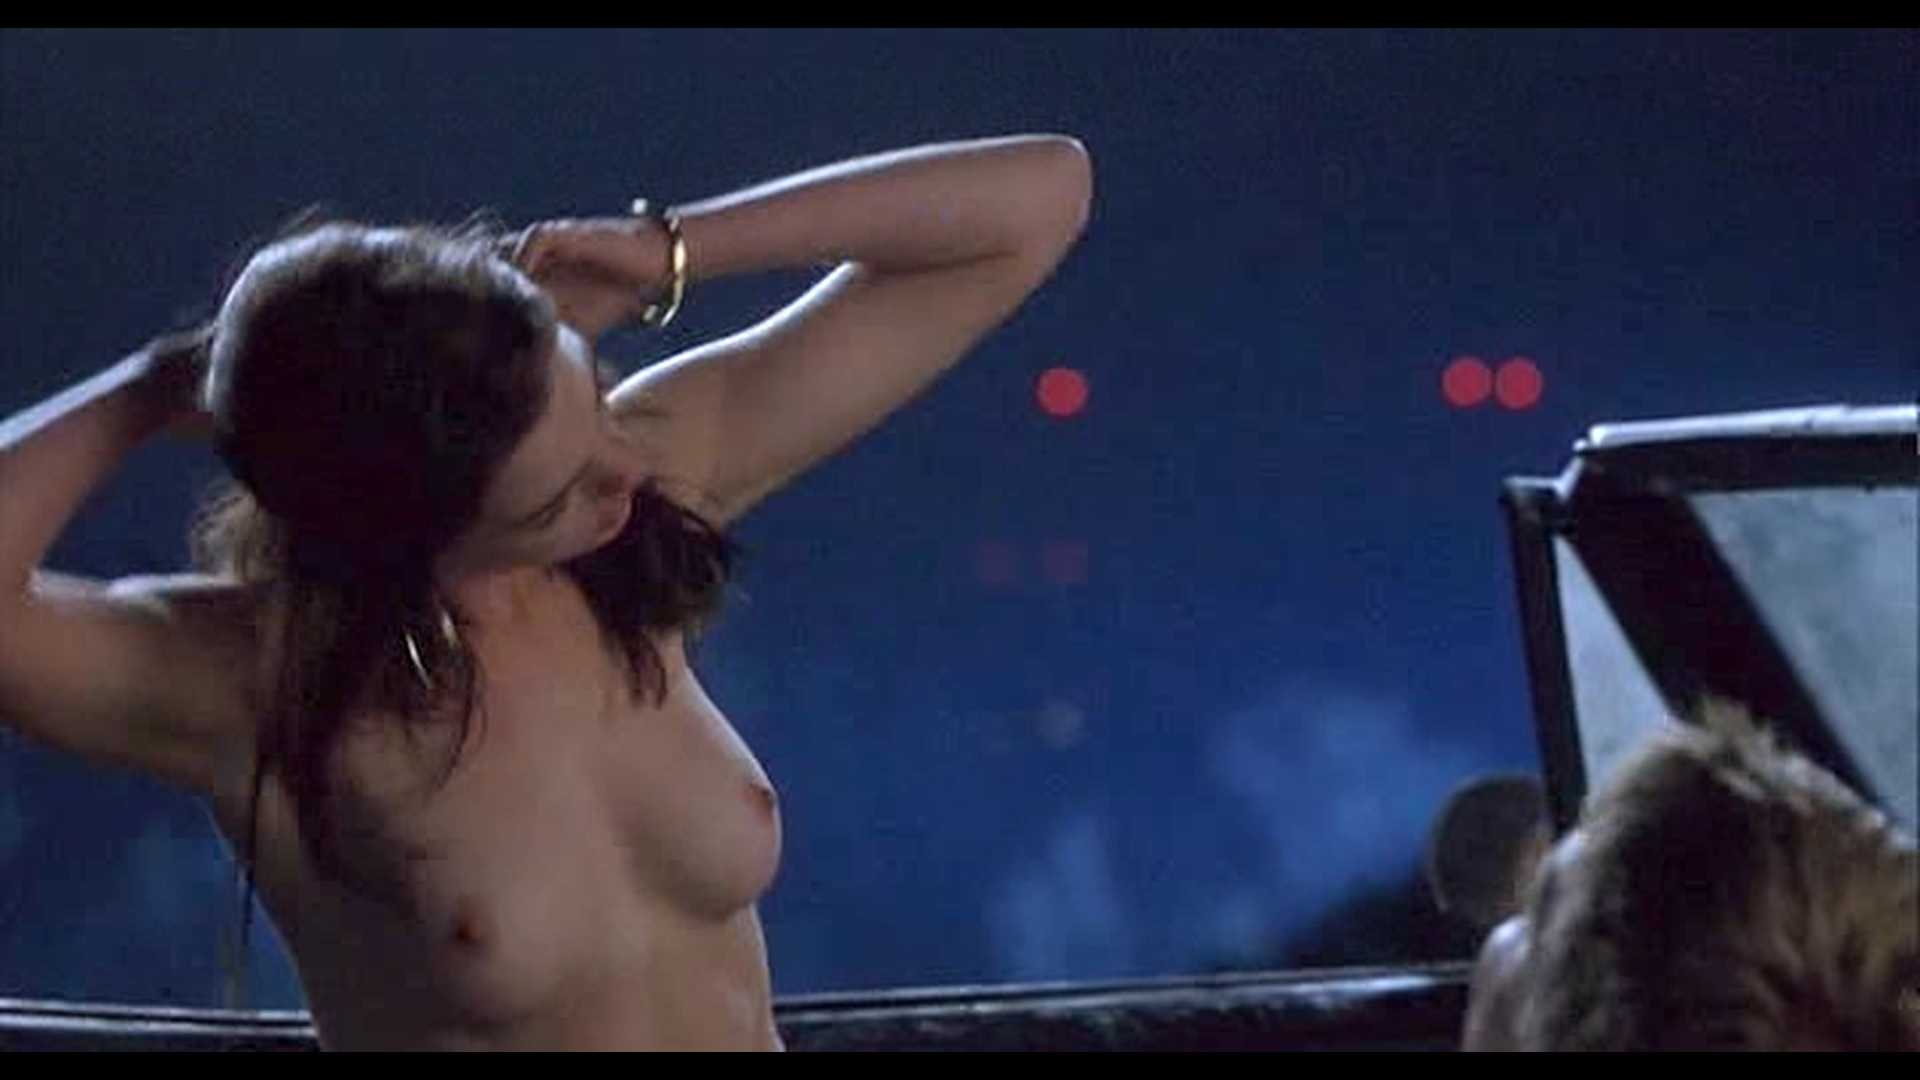 Anne hathaway free nude scenes